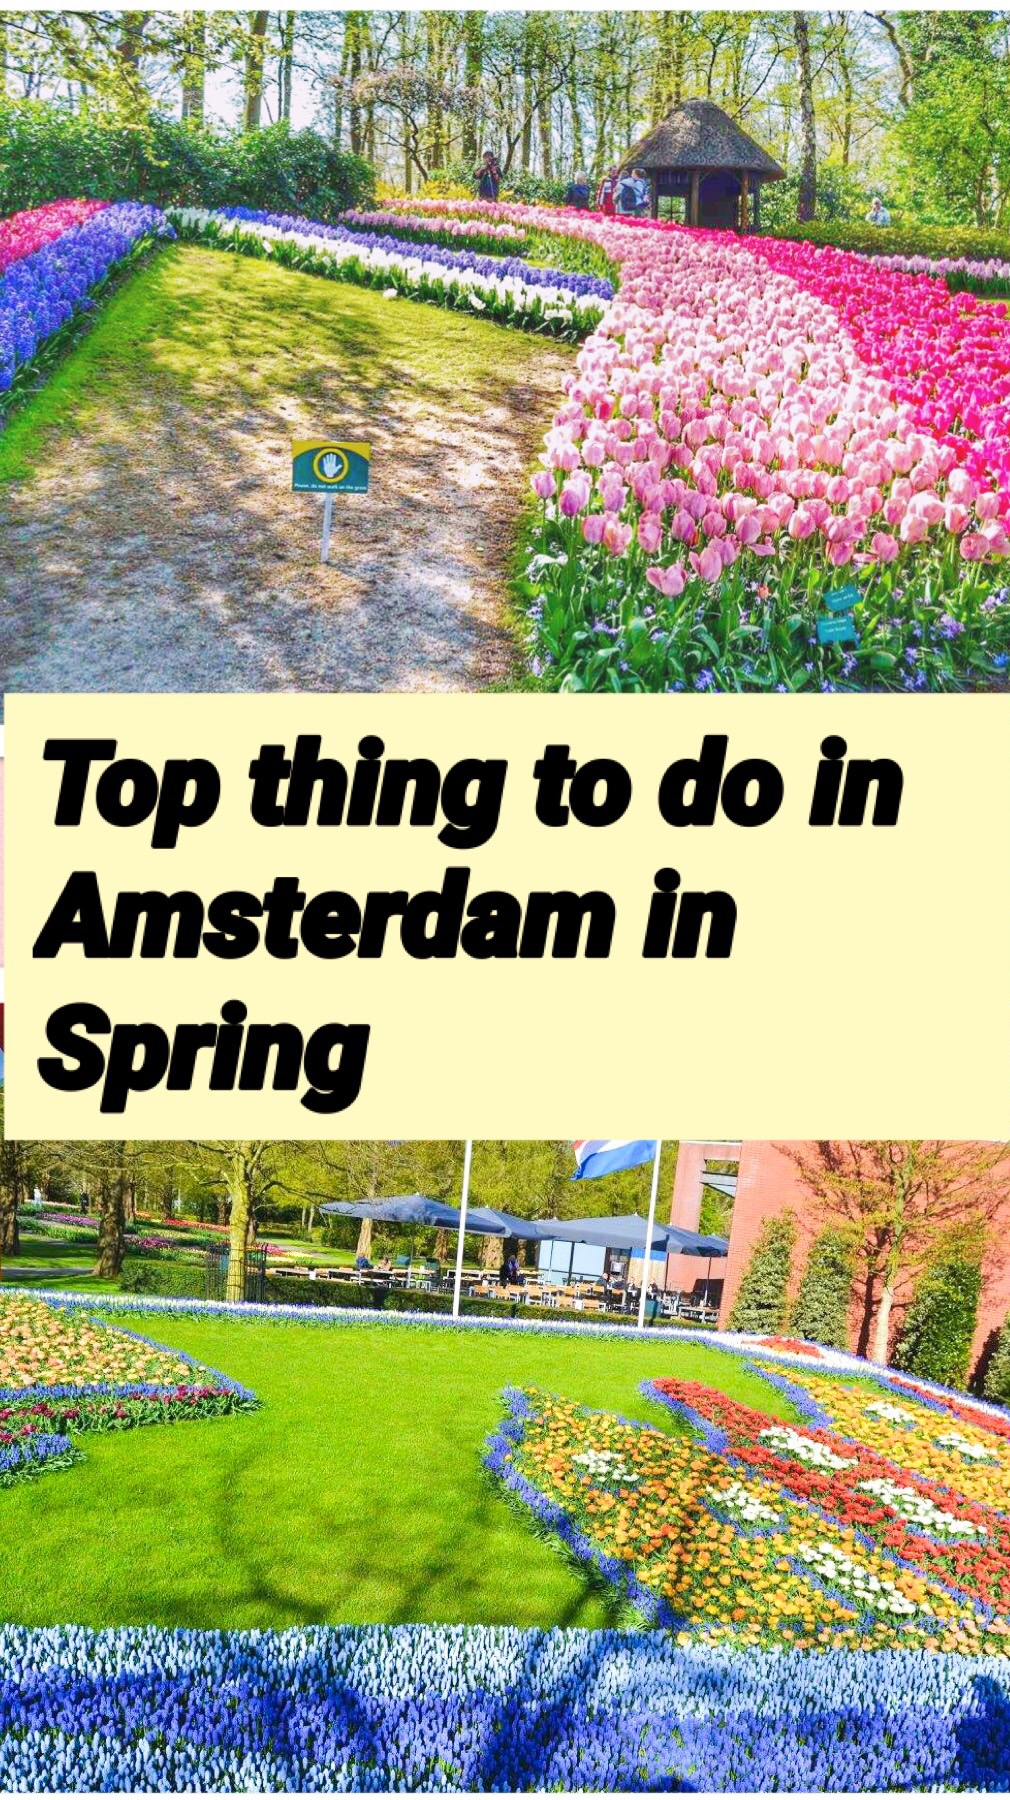 Top thing to do in Amsterdam in Spring